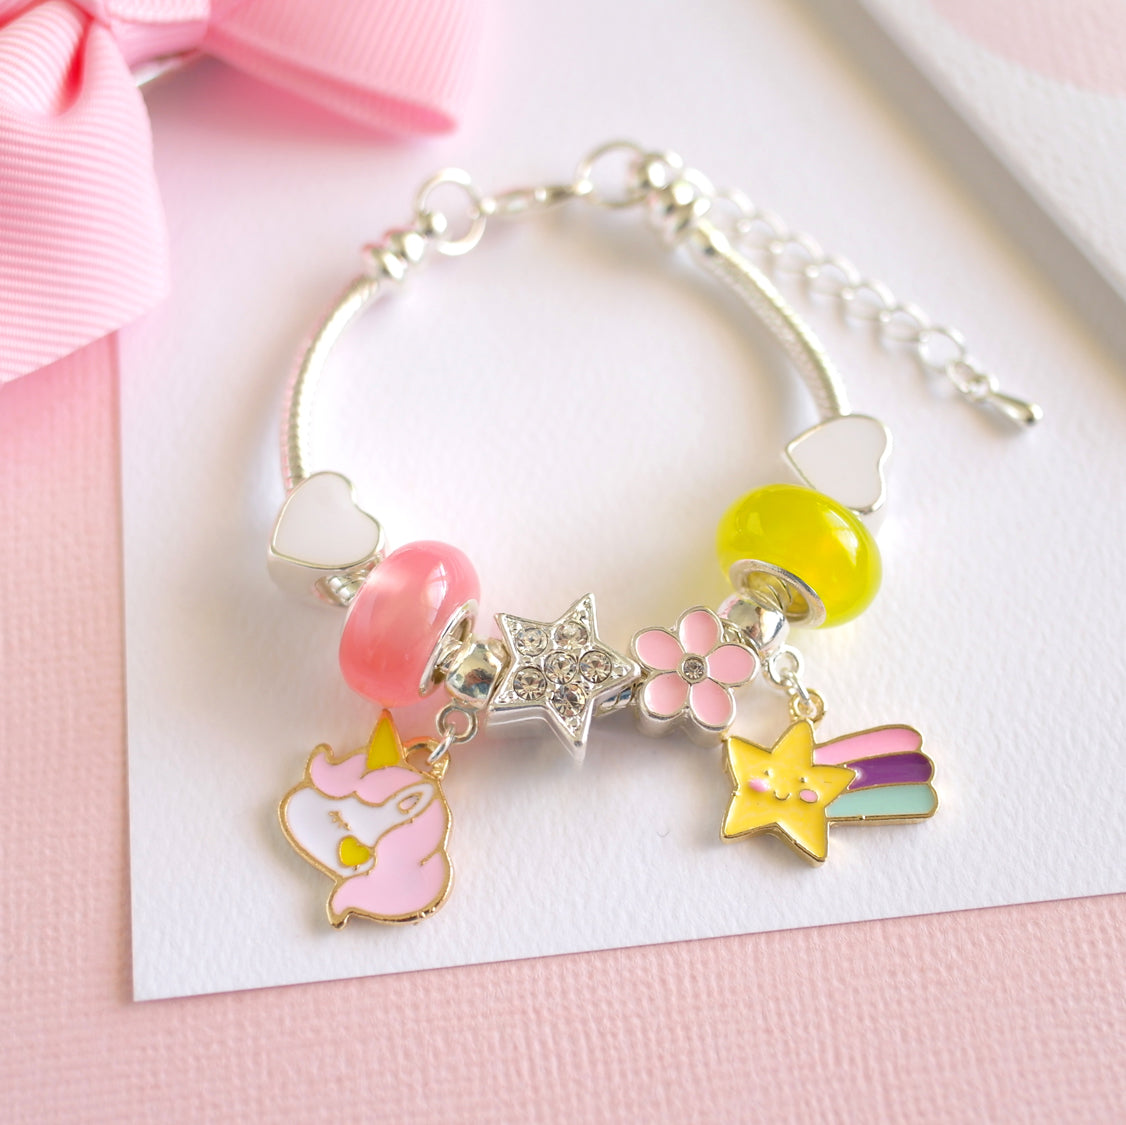 Ruby's Magic Wish Charm Bracelet